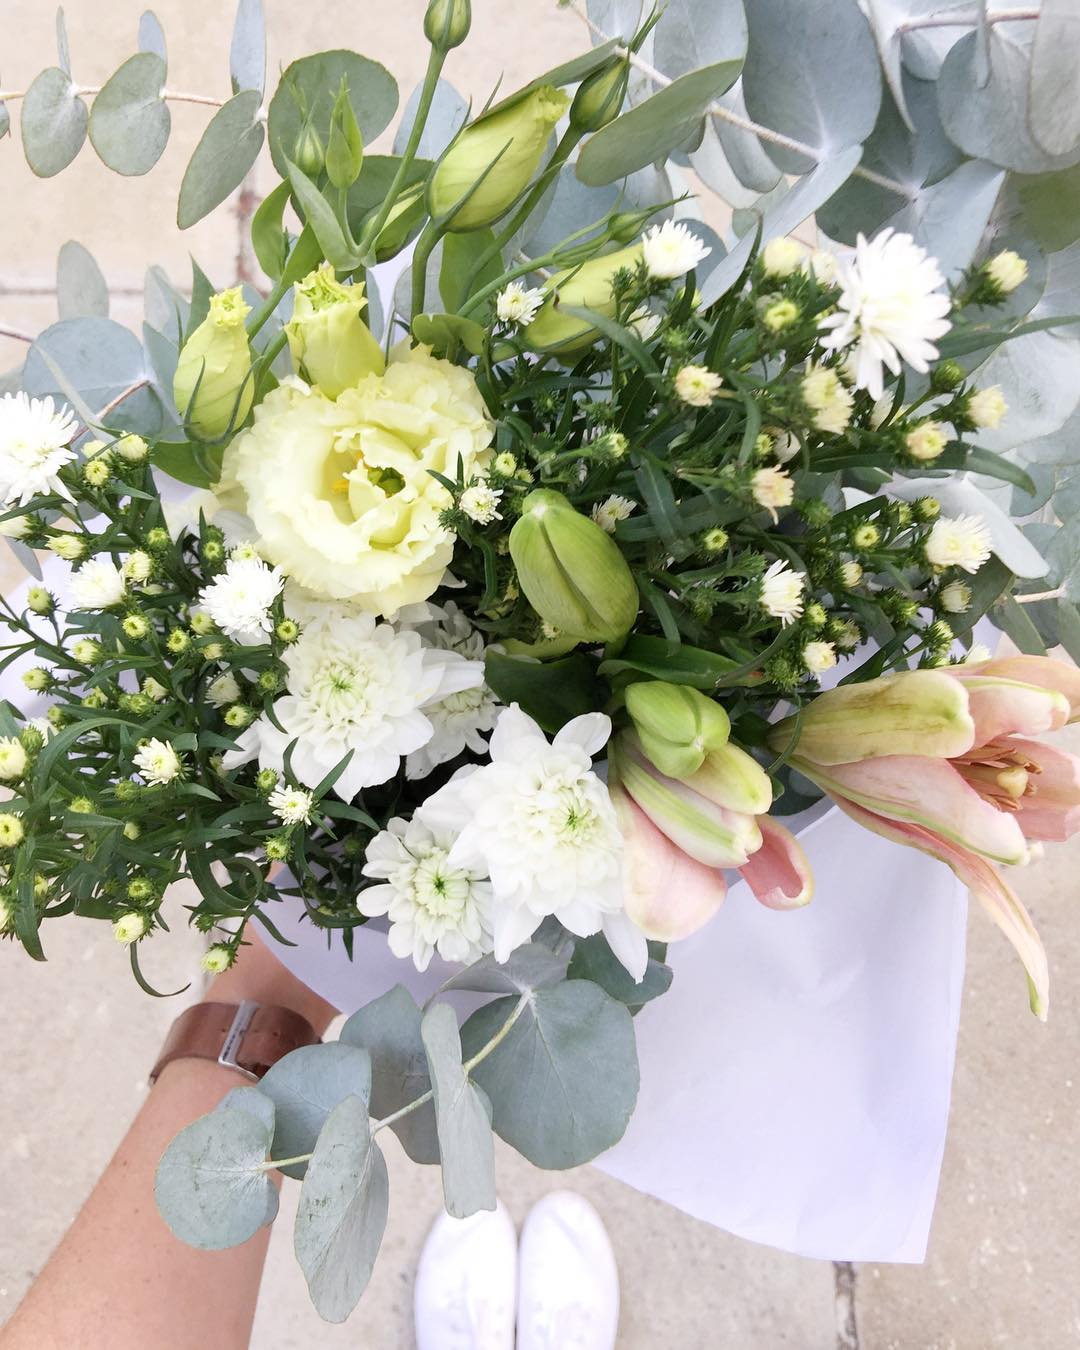 Today's posy is pink lilies with cream lisianthus, daisies, sprays and penny gum. Order before 12:30pm for delivery today.